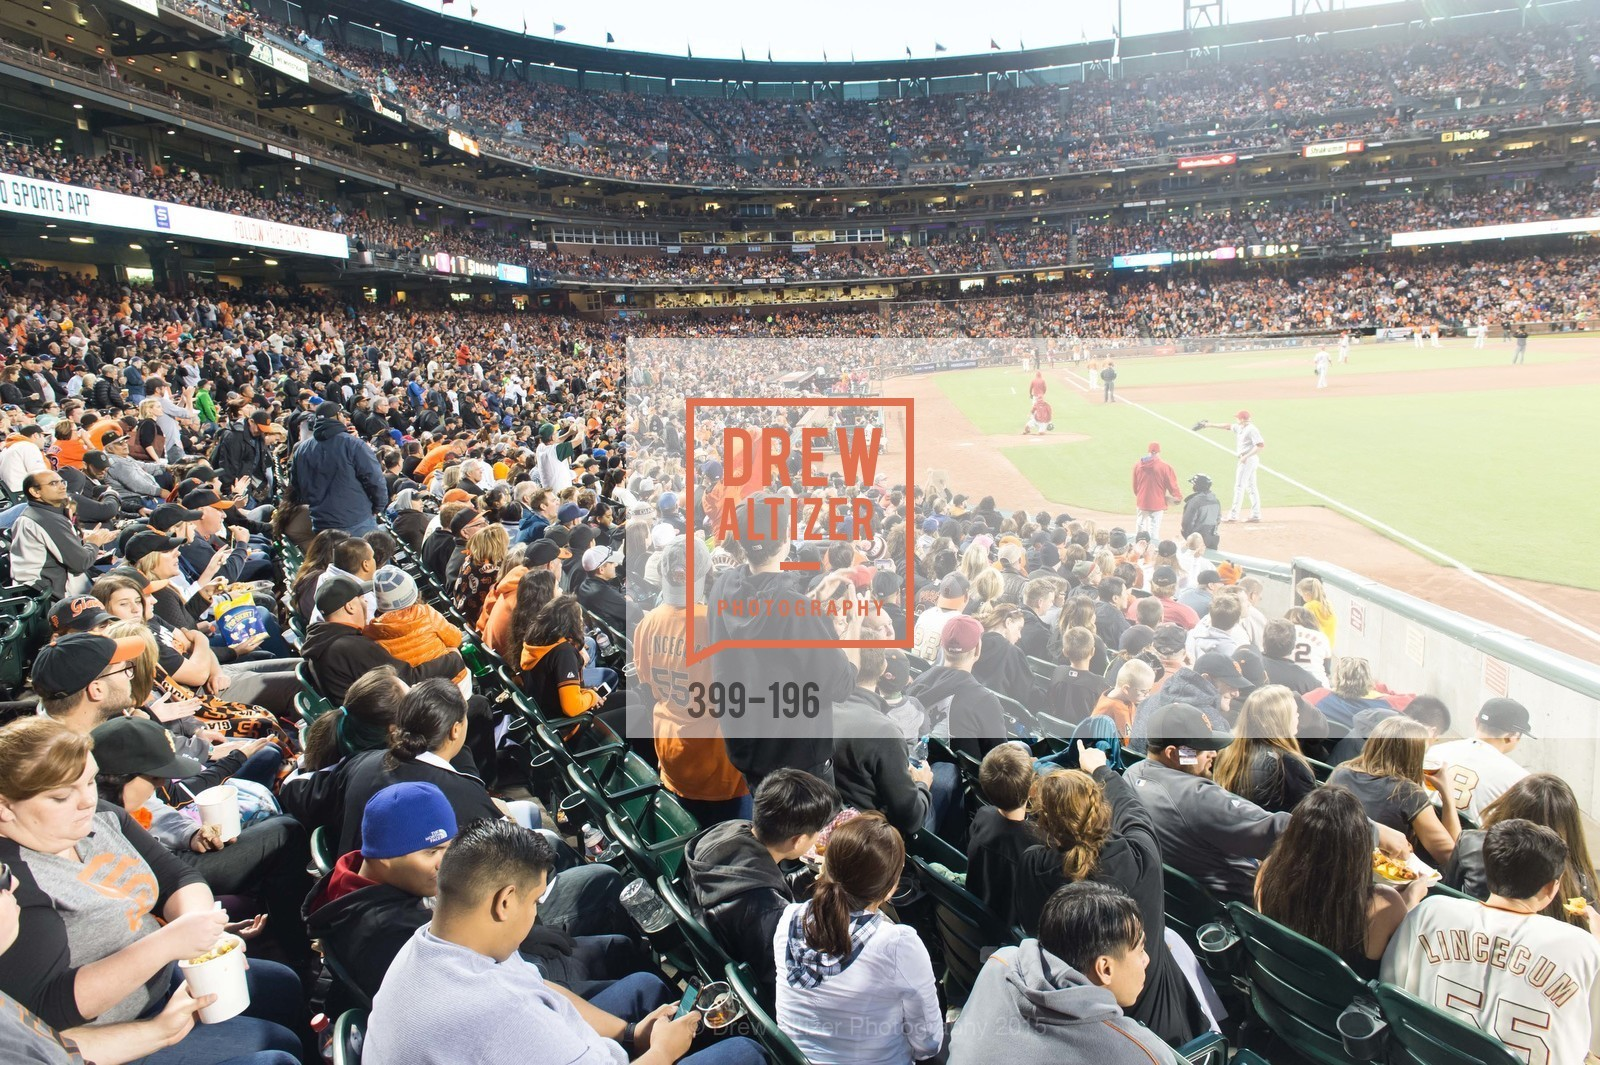 Atmosphere, Francis Ford Coppola Winery Presents Diamond on the Diamond, San Francisco Giants AT&T Park, Virgin America Loft. 24 Willie Mays Plaza, July 10th, 2015,Drew Altizer, Drew Altizer Photography, full-service event agency, private events, San Francisco photographer, photographer California